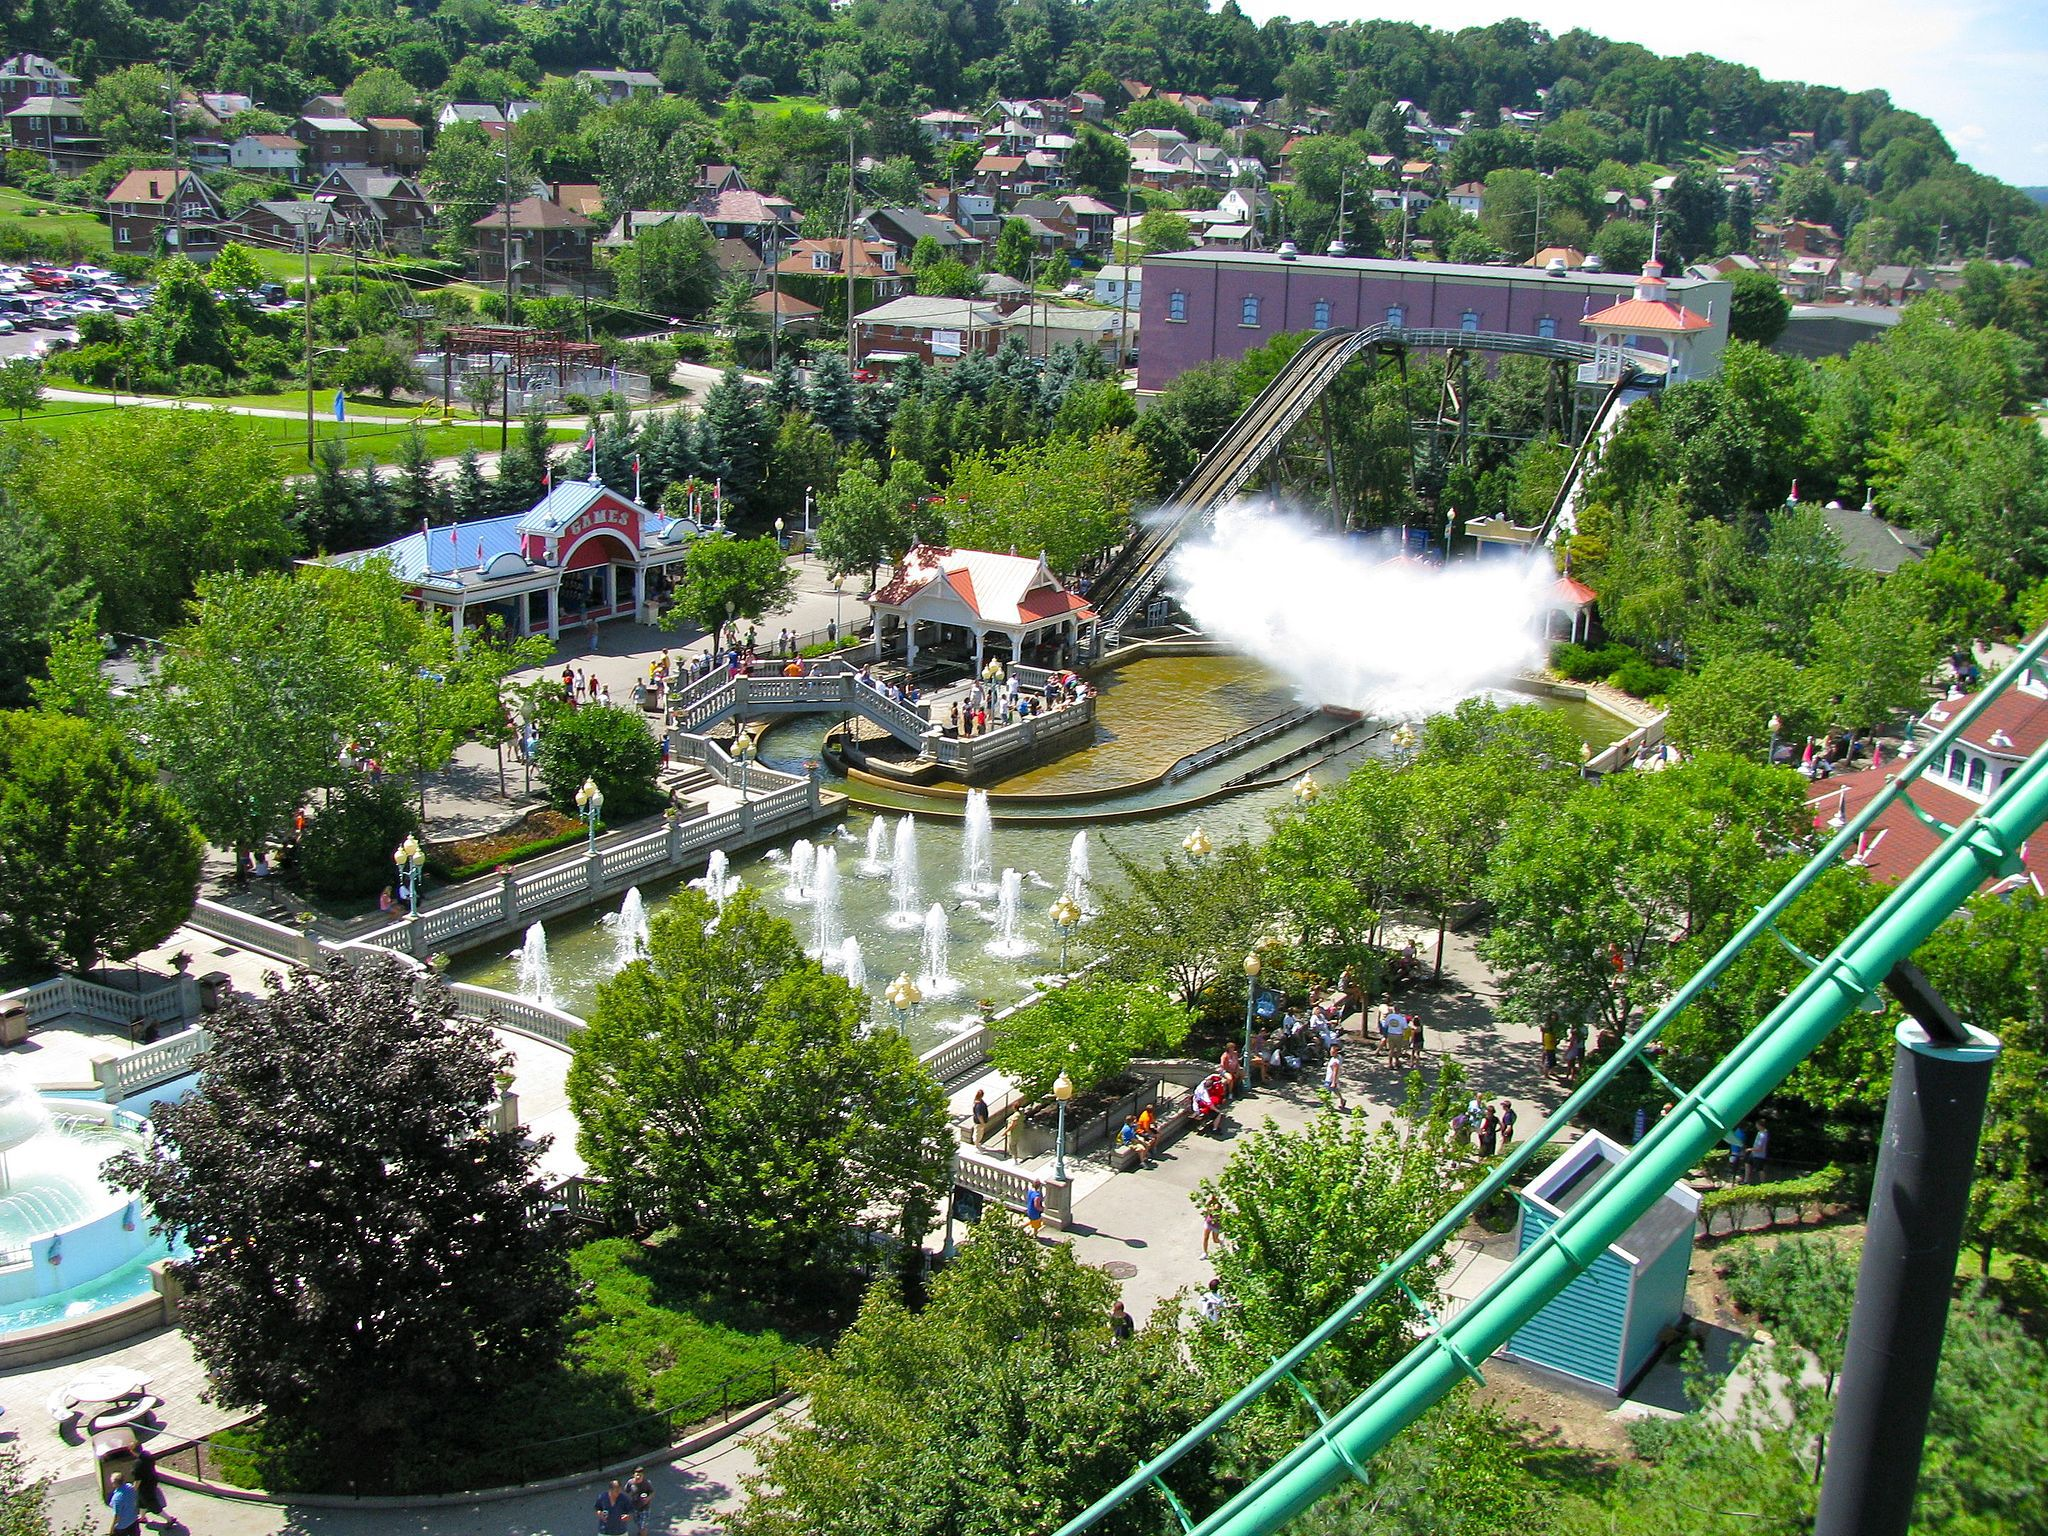 Kennywood Amusement Park Hours and Tickets